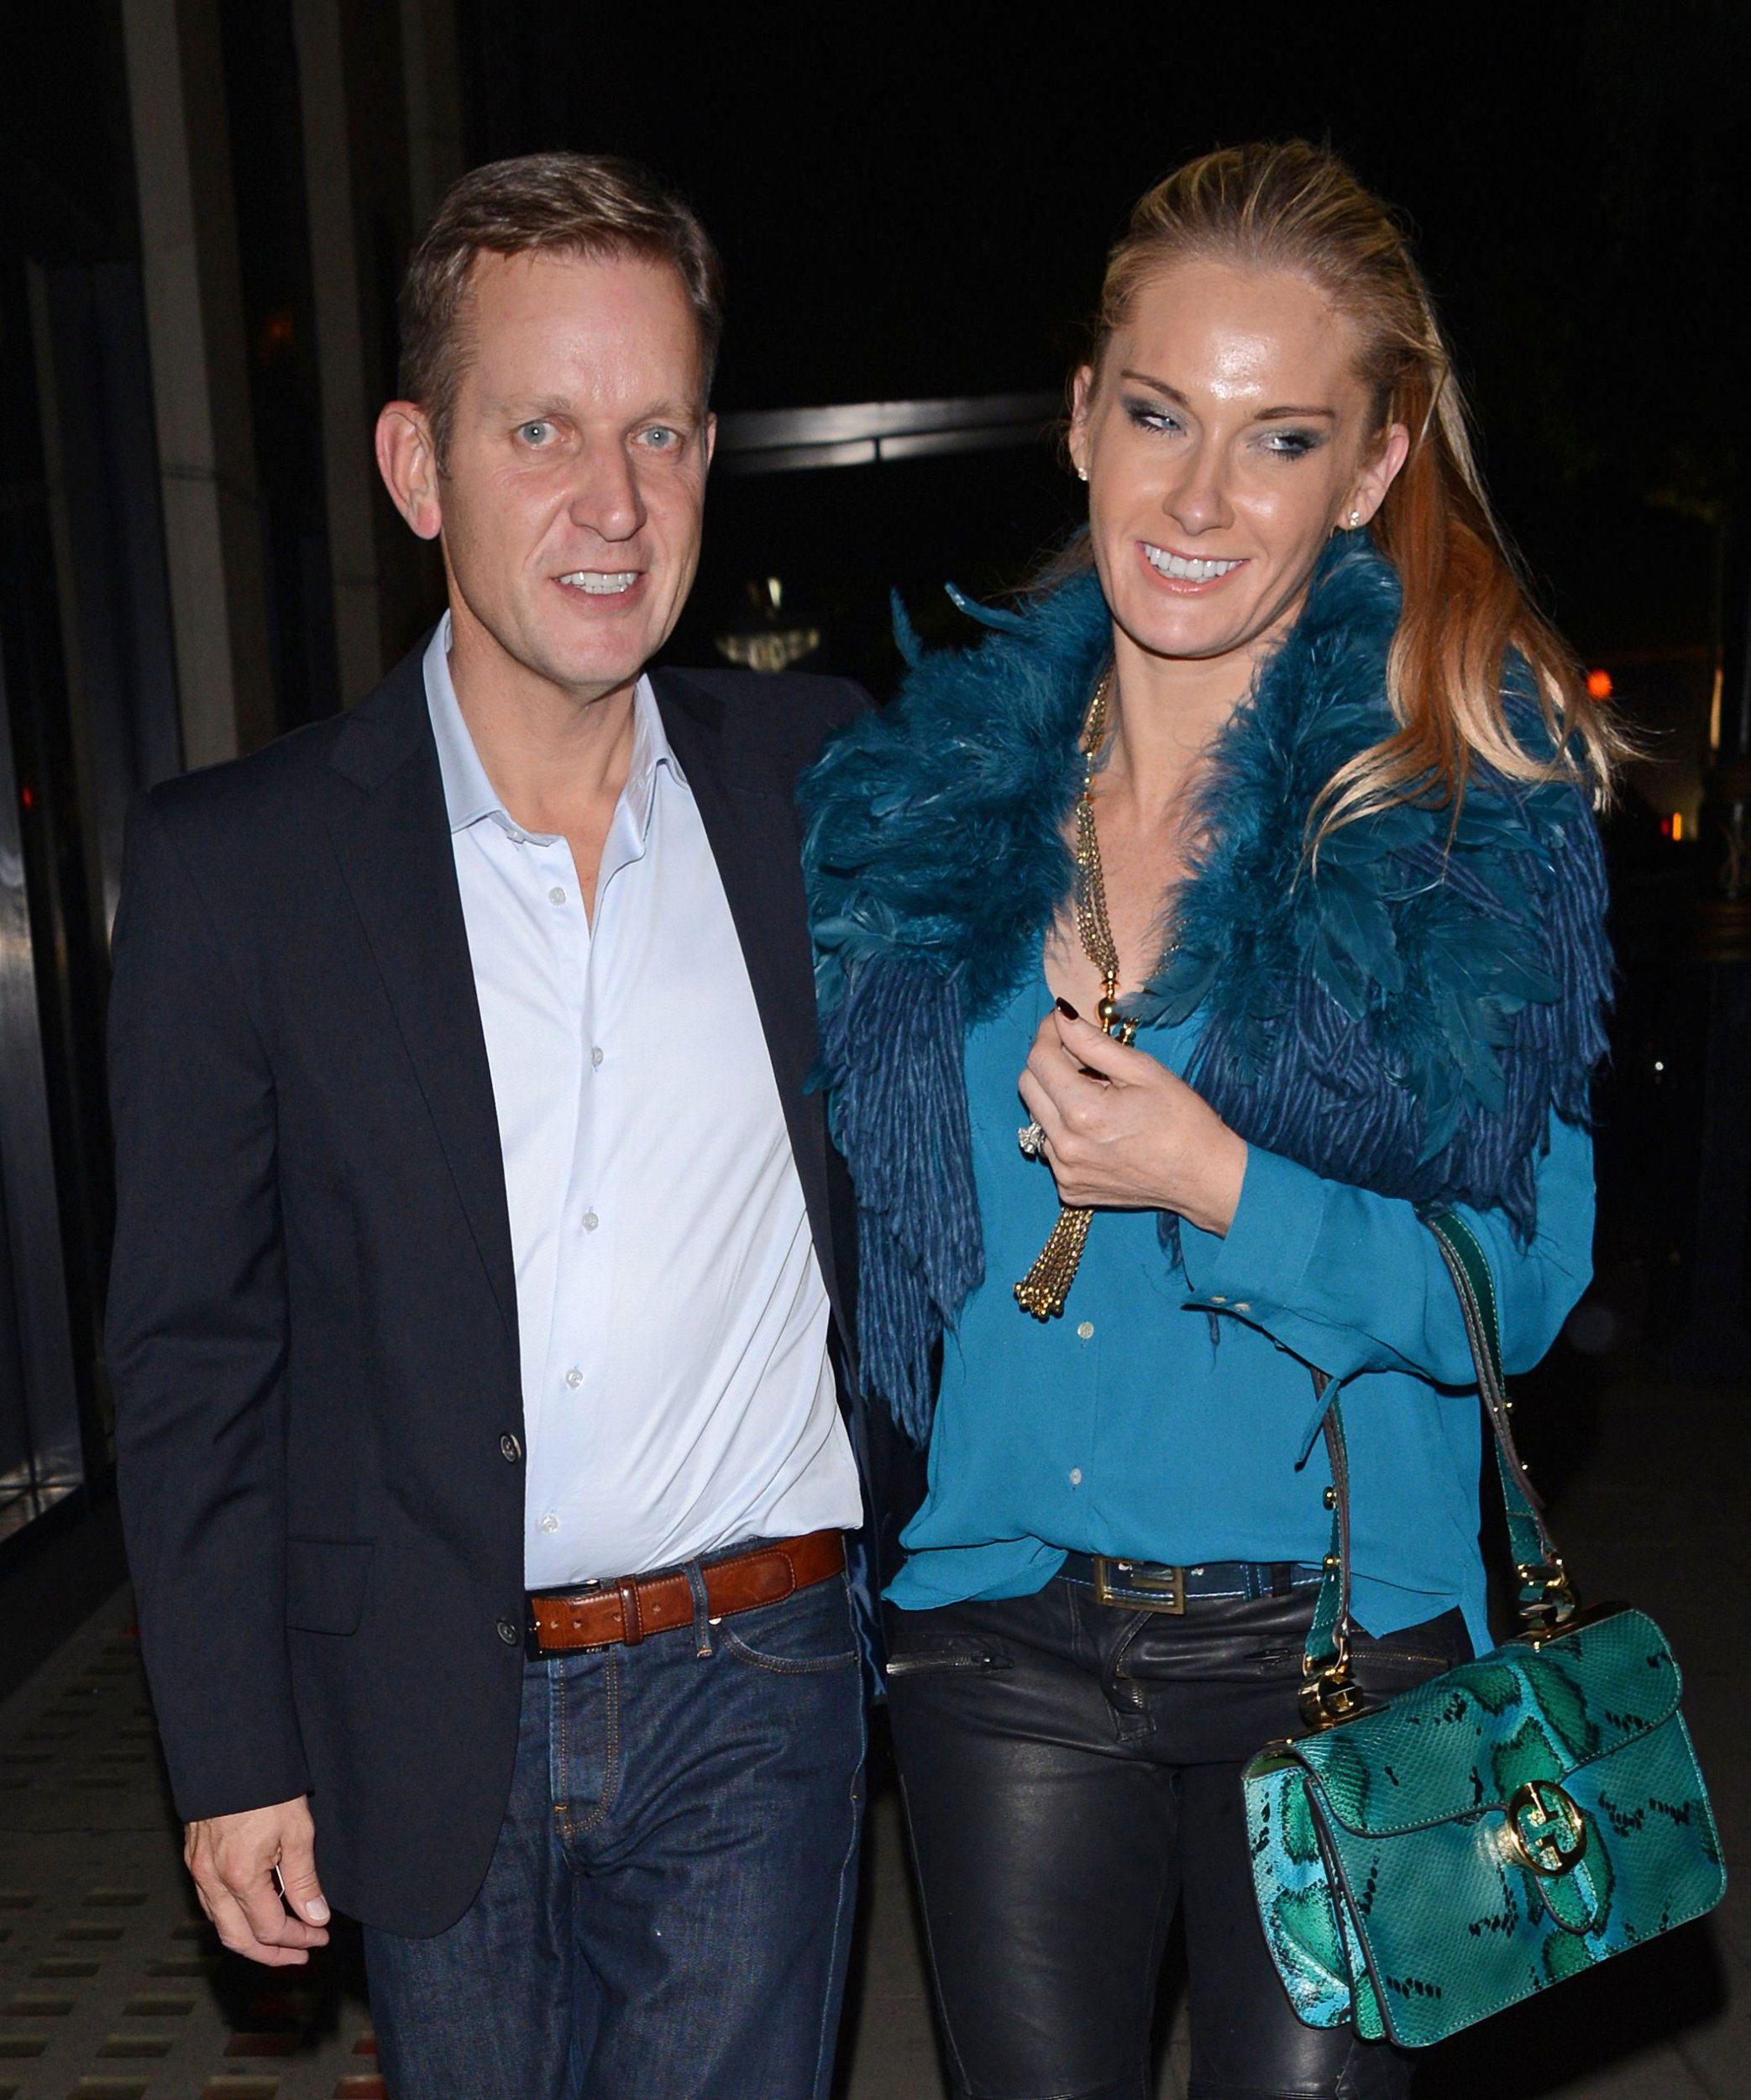 EXCLUSIVE ALL ROUND - Outside subscription deals. For Newspaper (print and web) only. No Magazine use Mandatory Credit: Photo by Photofab/REX/Shutterstock (3161368d) Jeremy Kyle with wife Carla Kyle Jeremy Kyle out and about, London, Britain - 08 Oct 2013